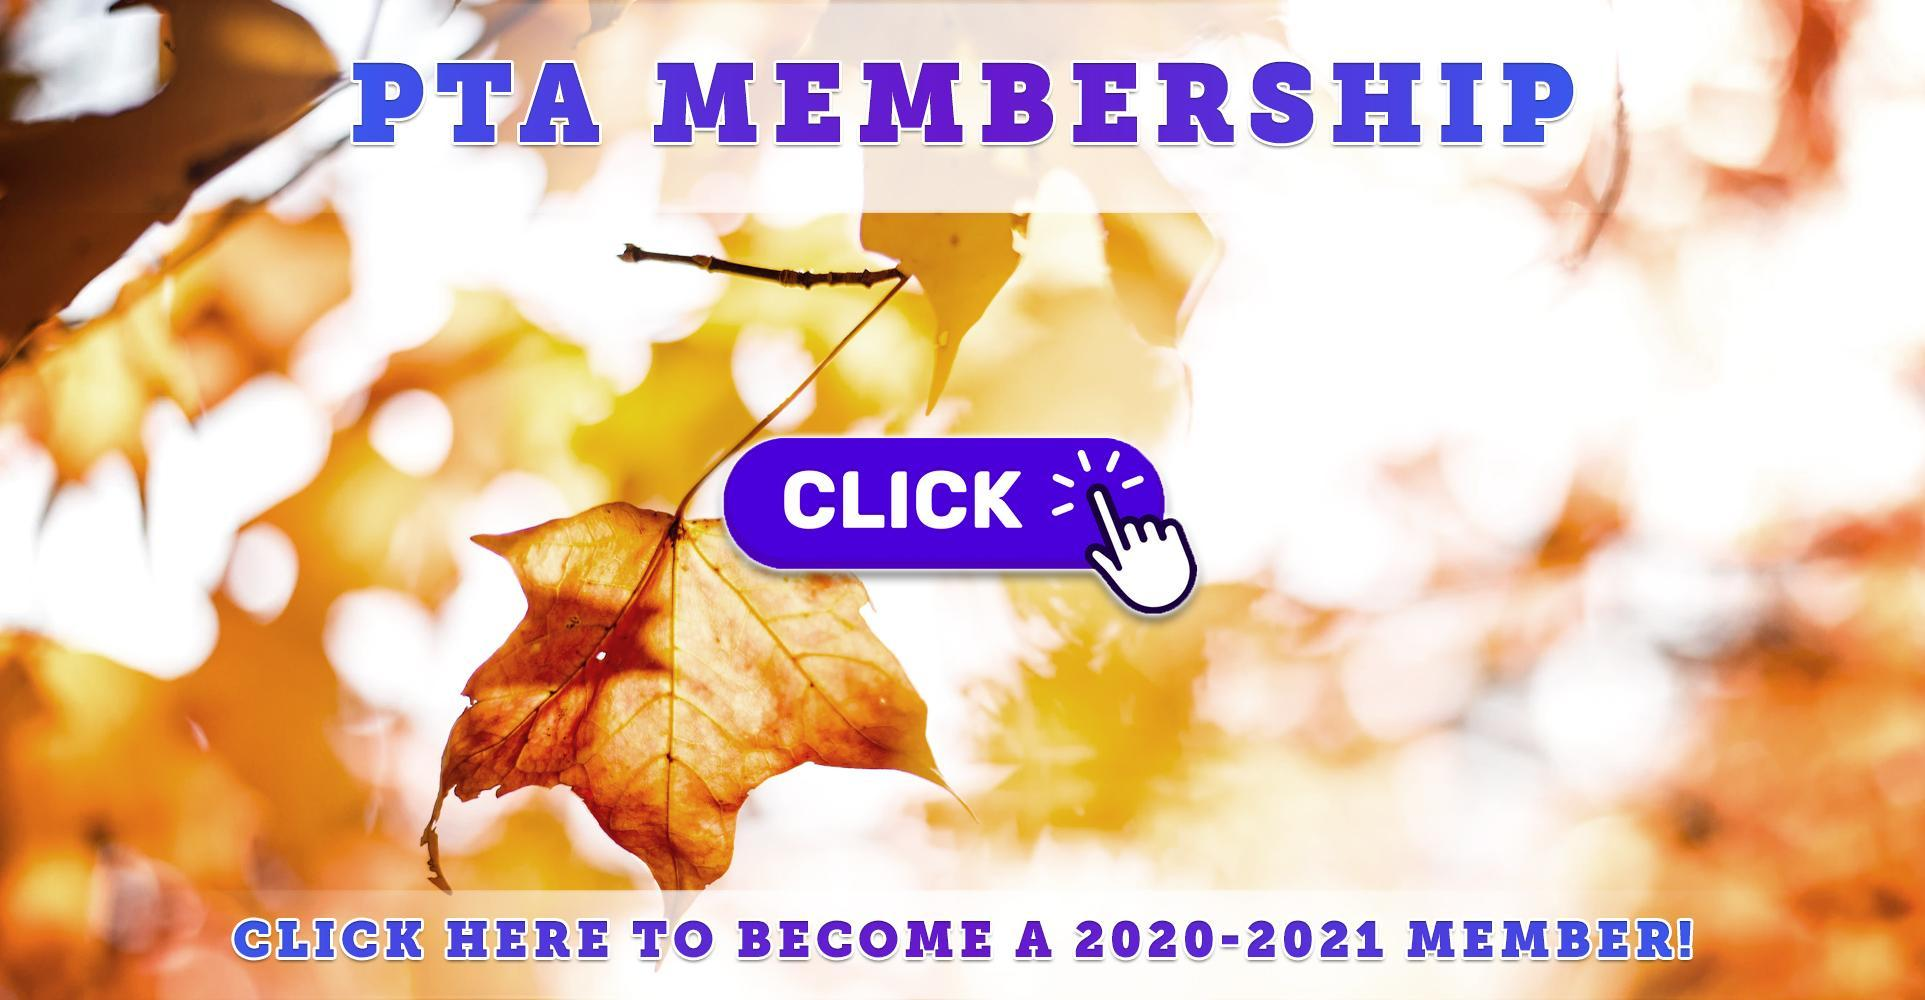 2020-2021 Morse Elementary PTA Membership - Join Online Today!